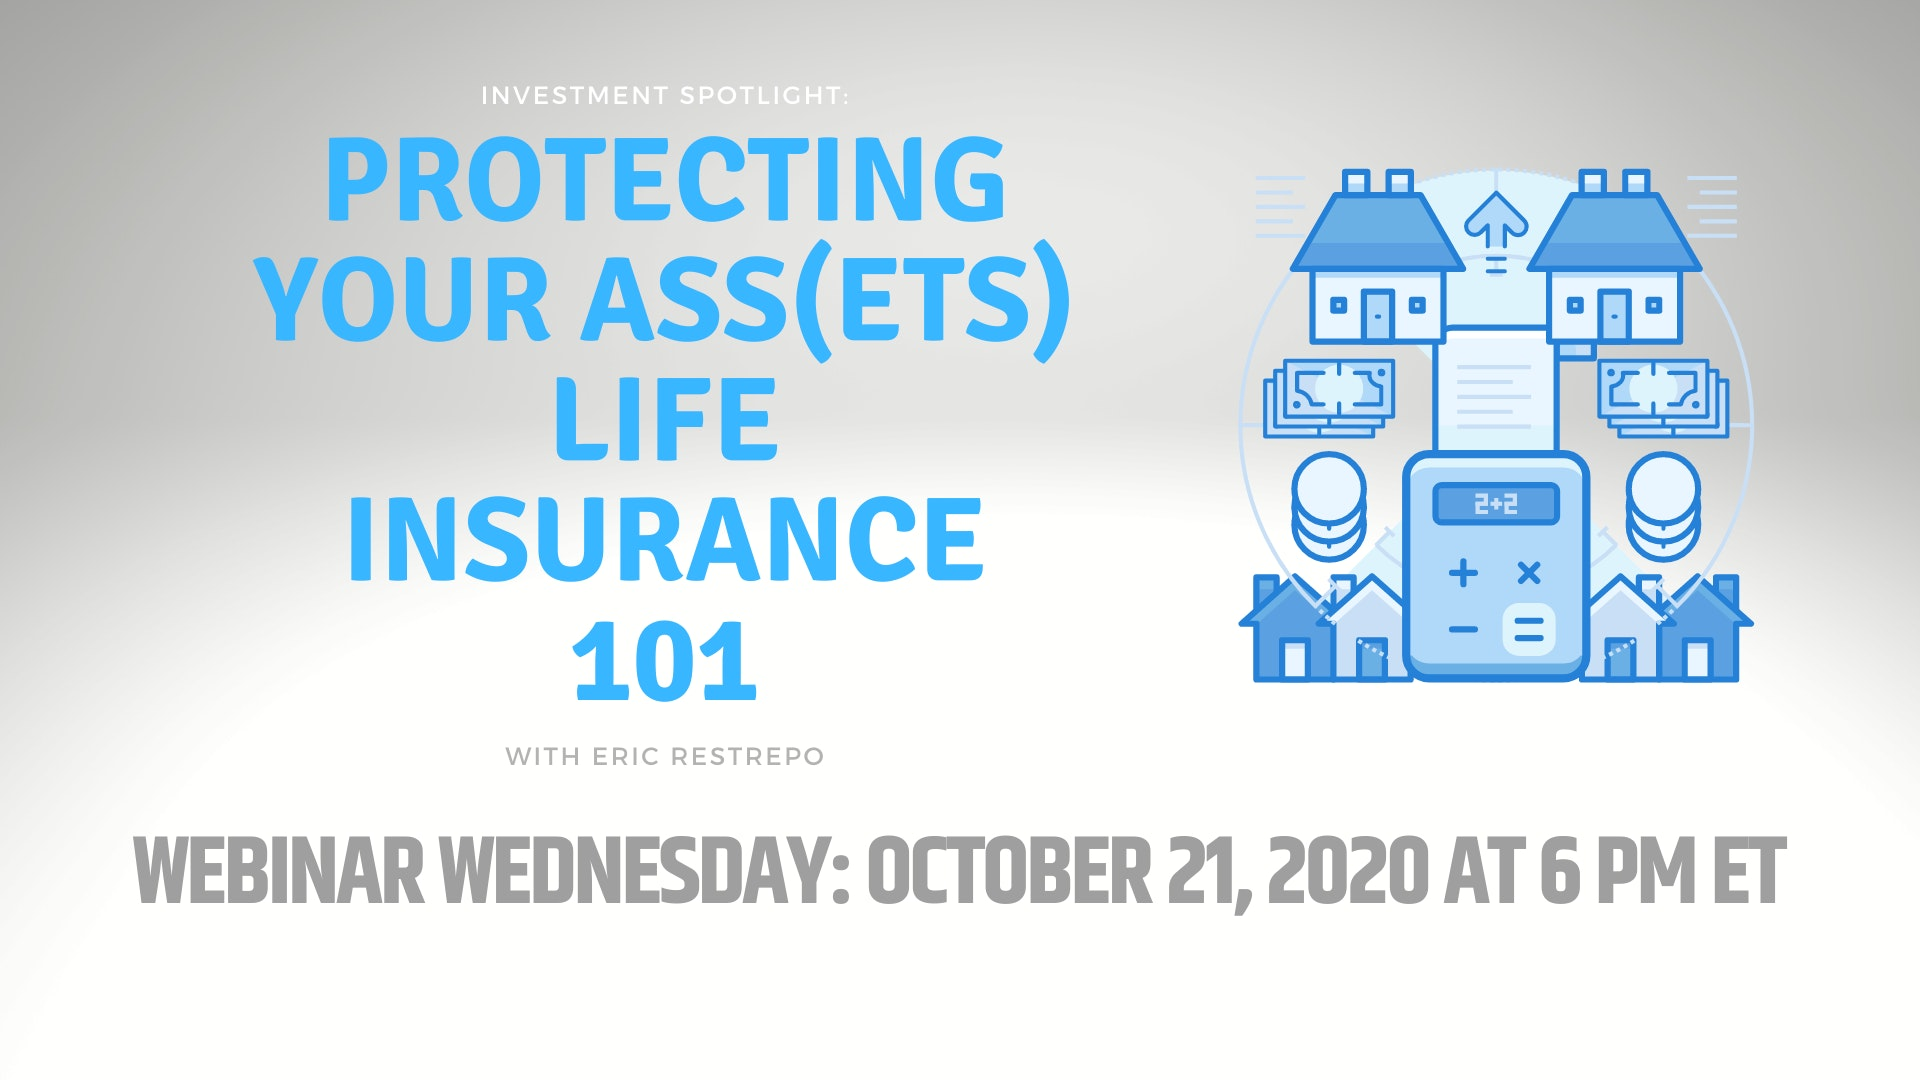 Protecting Your Assets Life Insurance 101